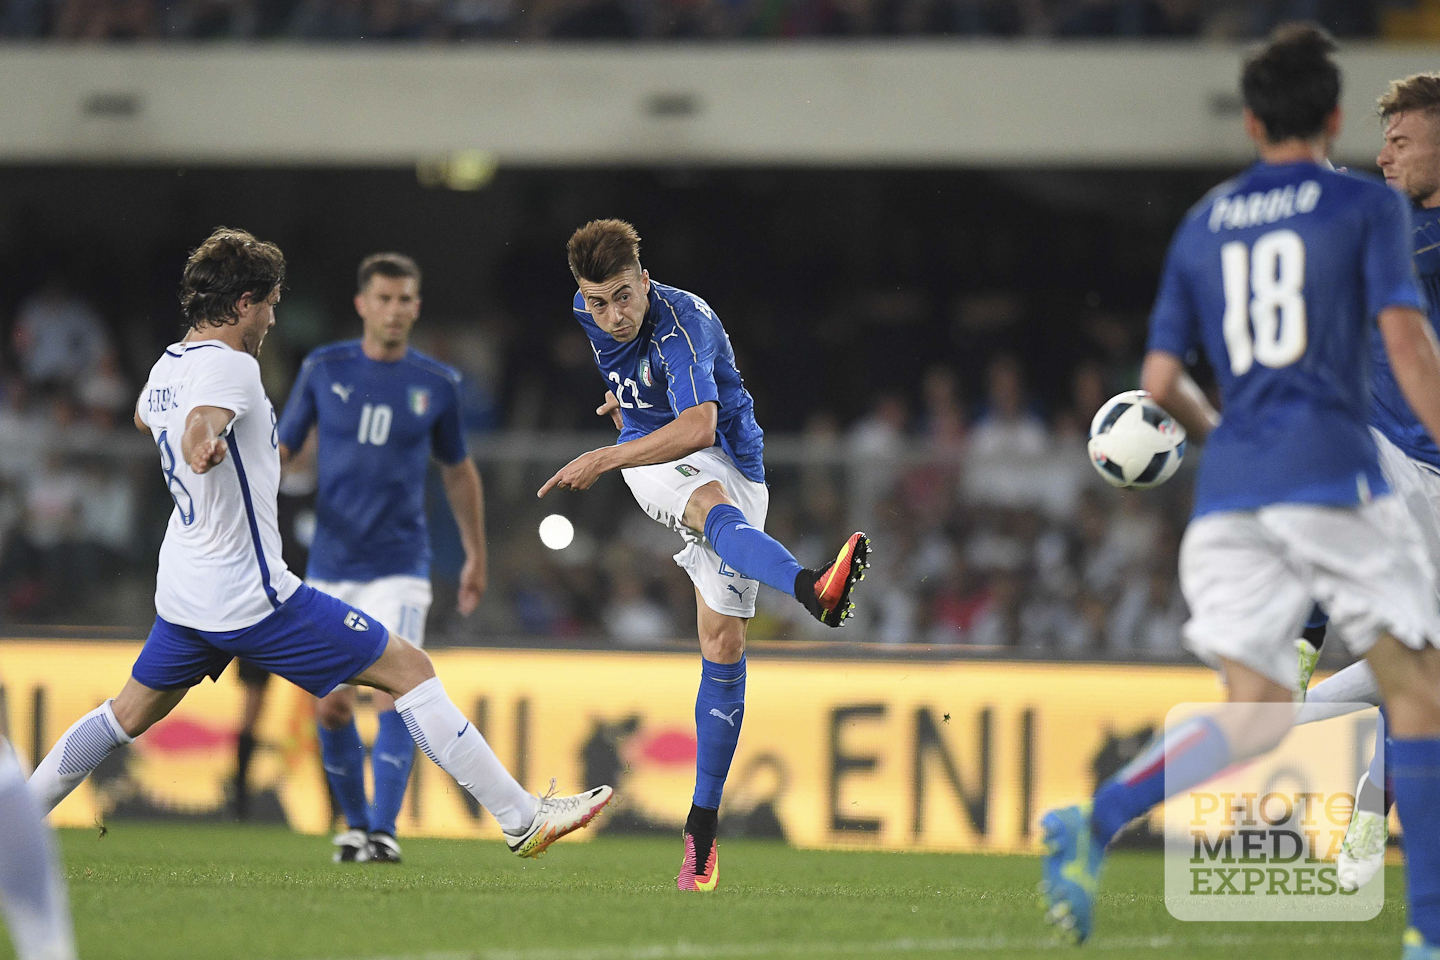 Italy vs Finland friendly match